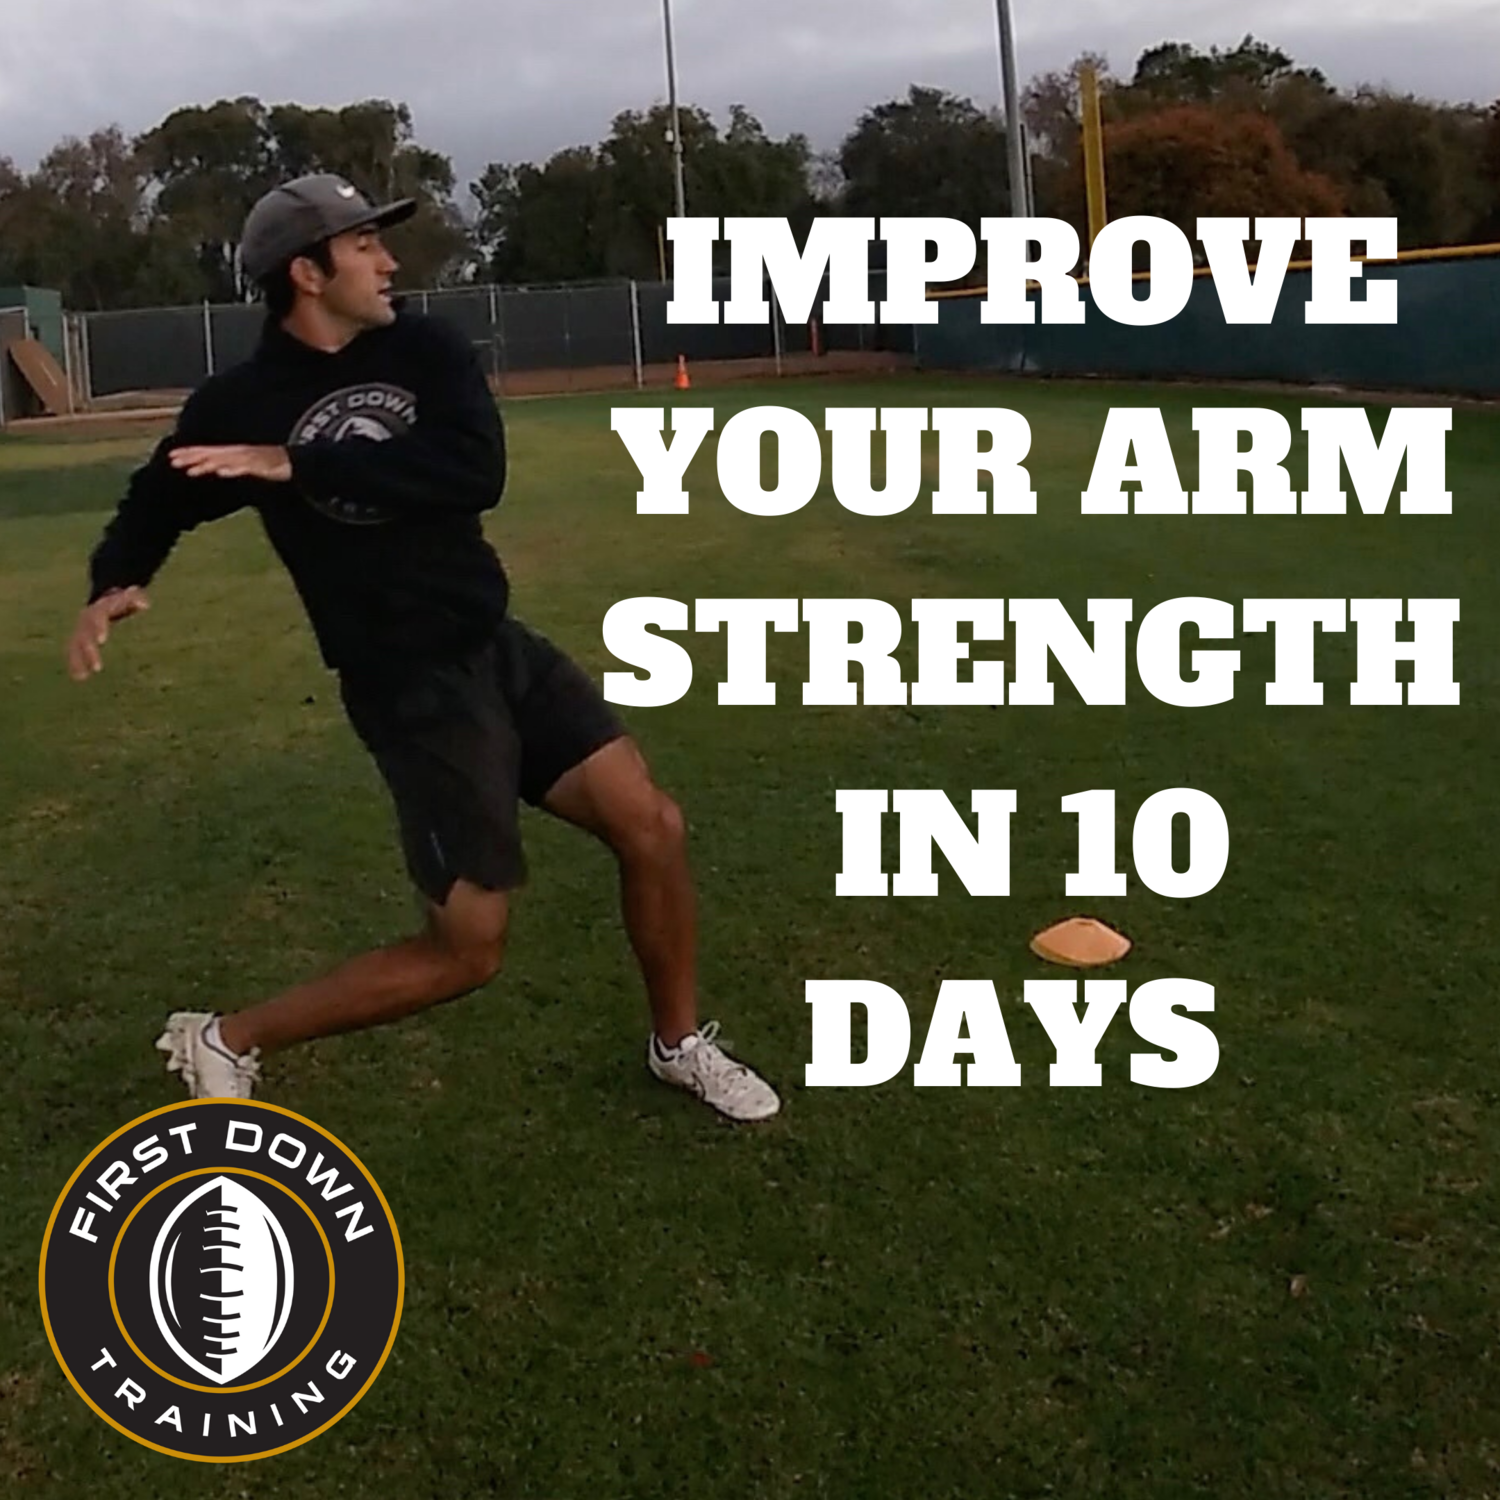 Improve Your Arm Strength In 10 DAYS